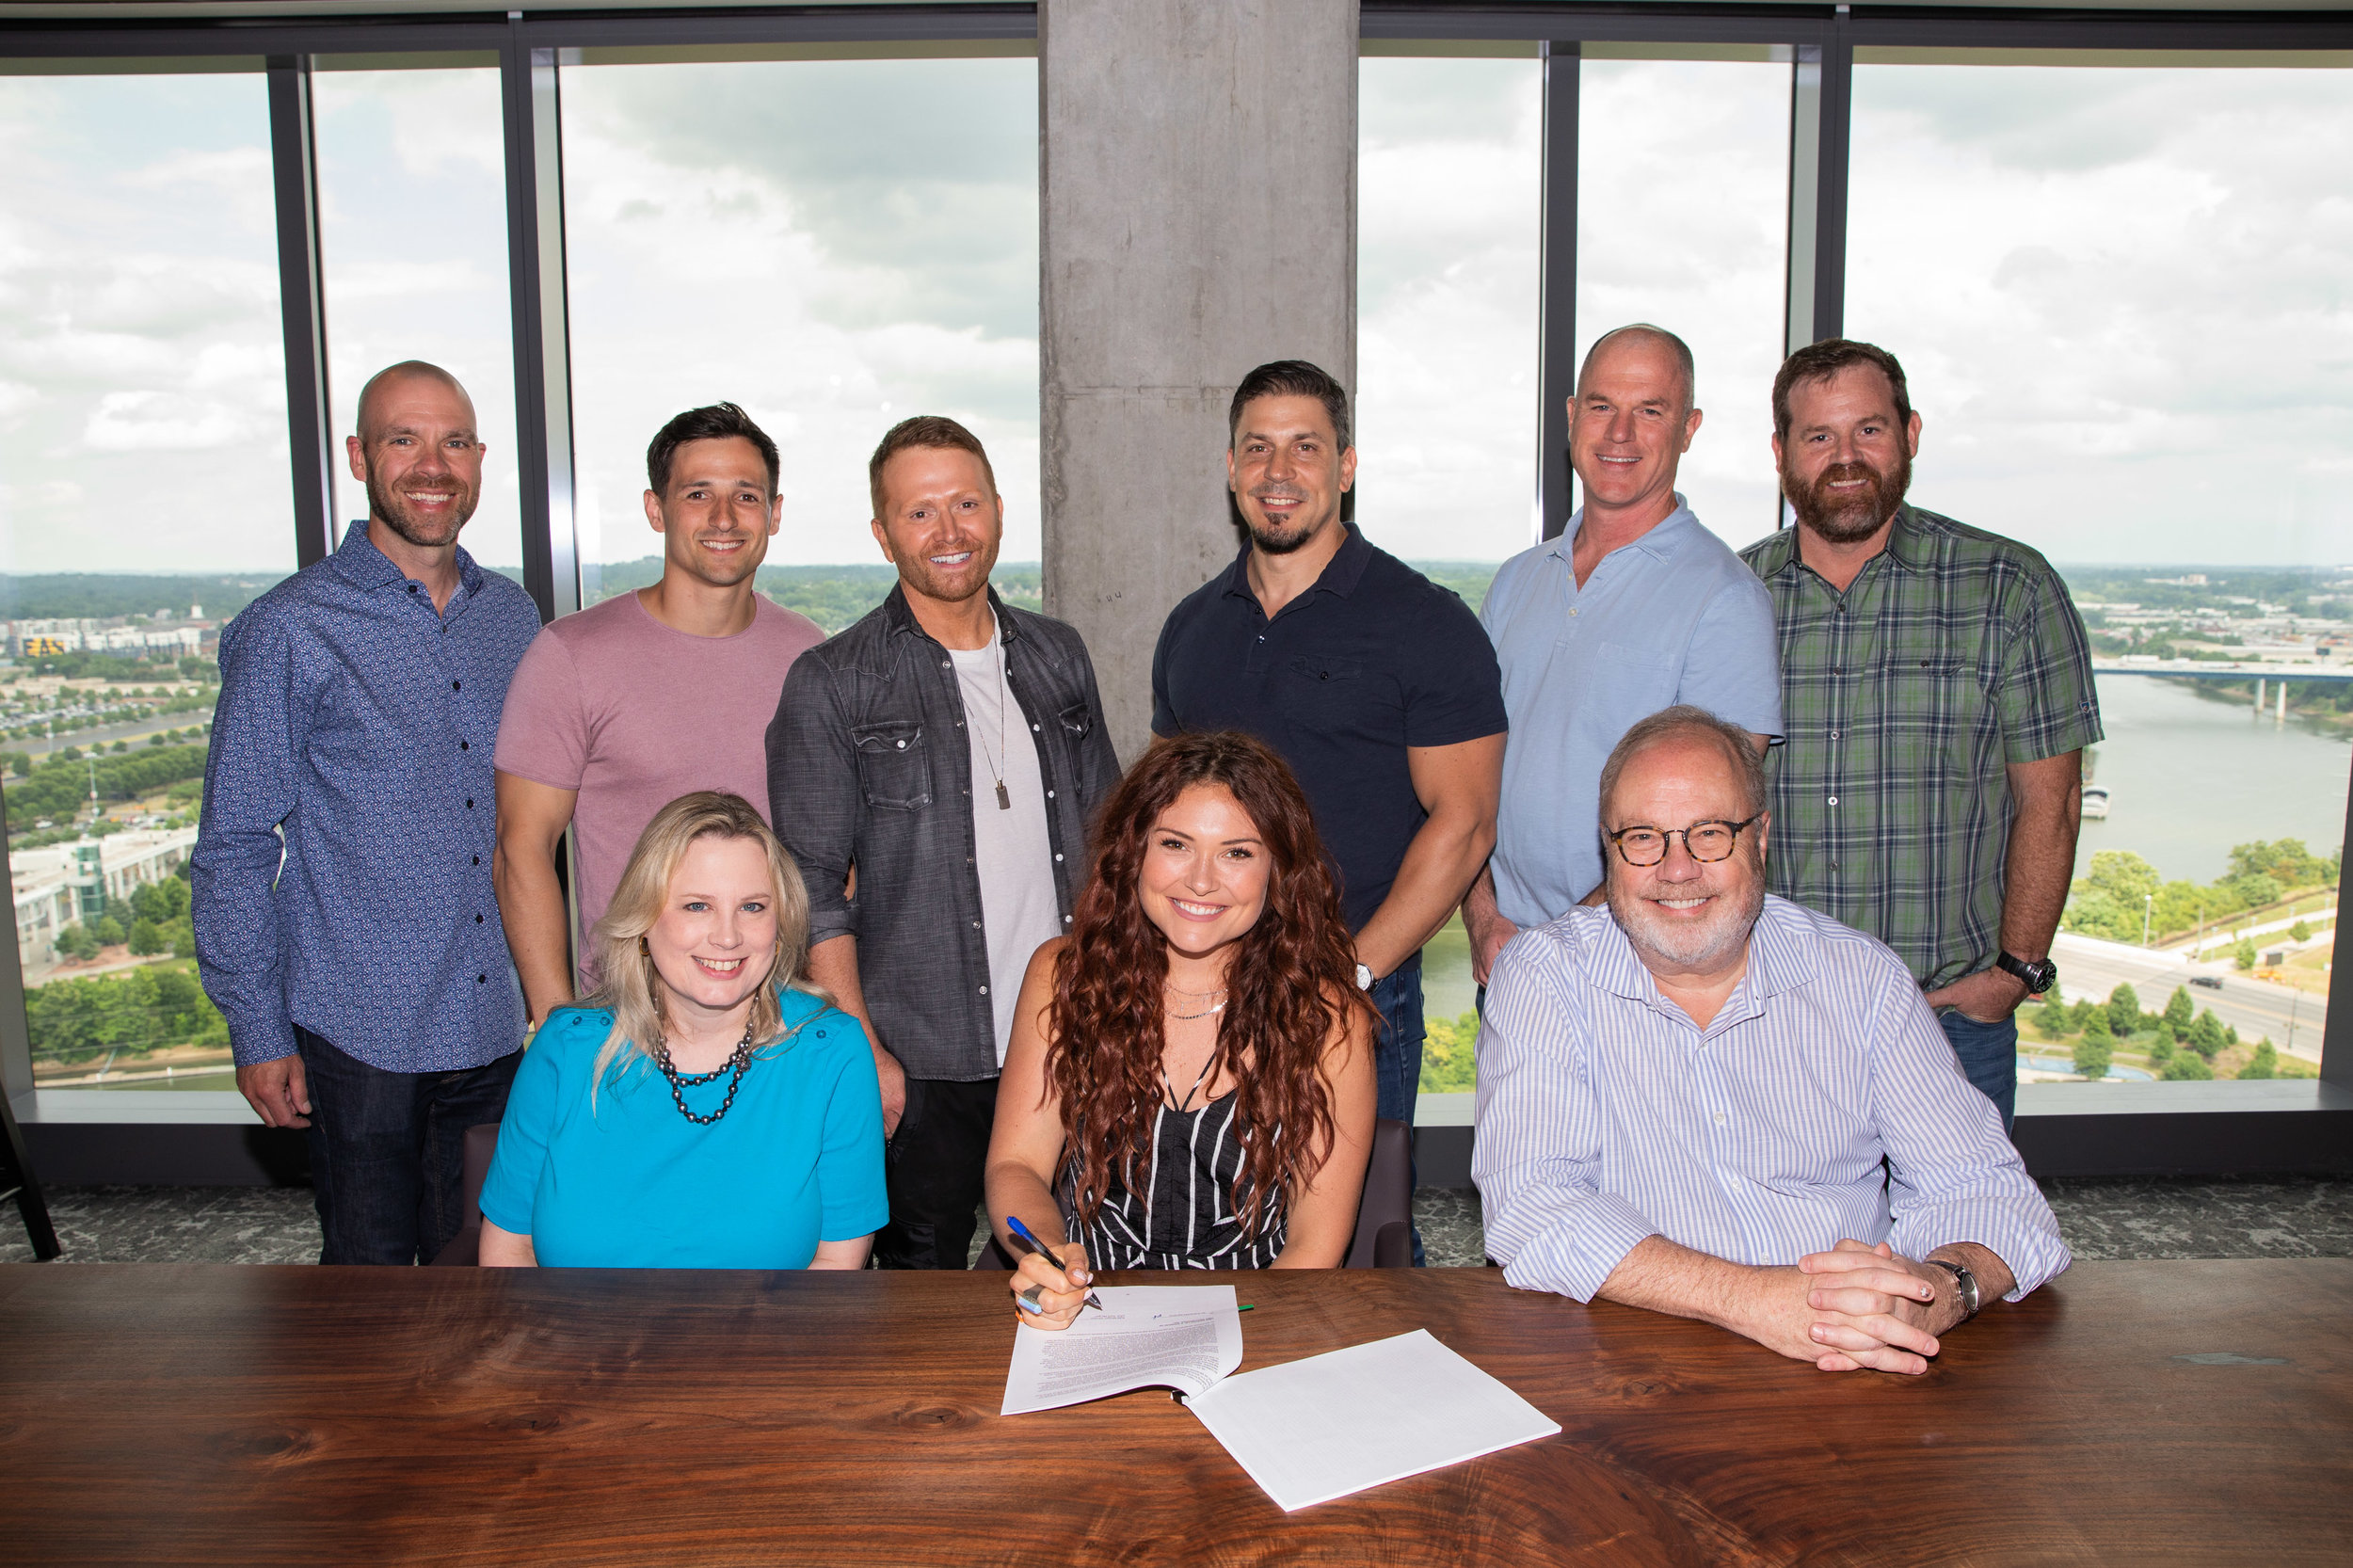 Pictured (L-R, front row): UMG Nashville President Cindy Mabe, Kylie Morgan, UMG Nashville Chairman & CEO Mike Dungan; (L-R, back row): Dickson Wright's Austen Adams, SMACKSongs Senior Vice President Project Development Robert Carlton, SMACKSongs Owner Shane McAnally, UMG Nashville Senior Vice President Business and Legal Affairs Rob Femia, UMG Nashville COO Mike Harris, UMG Nashville Executive Vice President Promotion Royce Risser. Photo: Katie Kauss